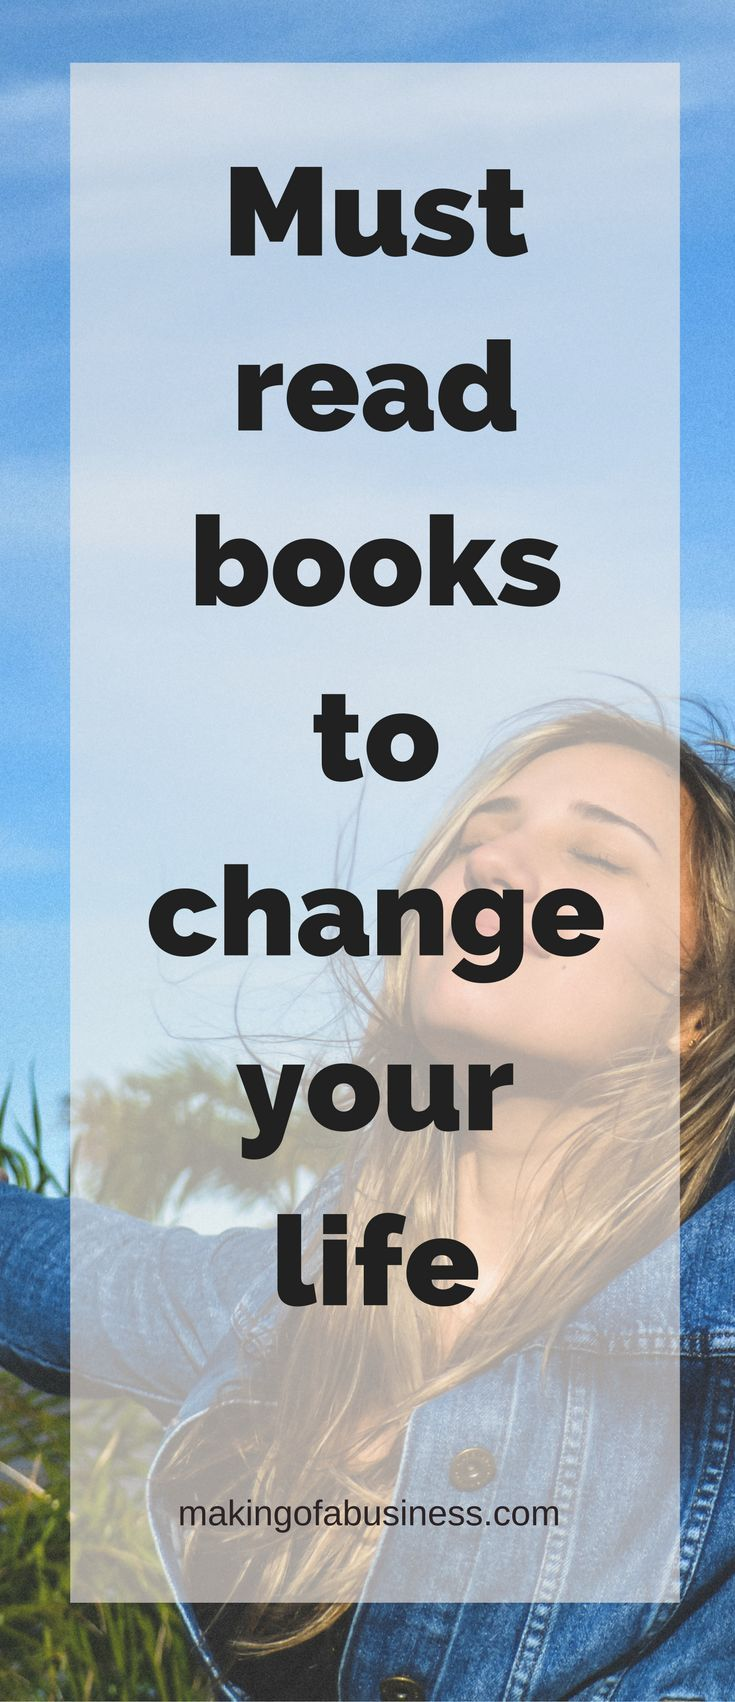 Are you looking for a positive book to listen to in the car or read before bed to keep pushing you in a new direction?  Click here for a list of must read books to change your life.